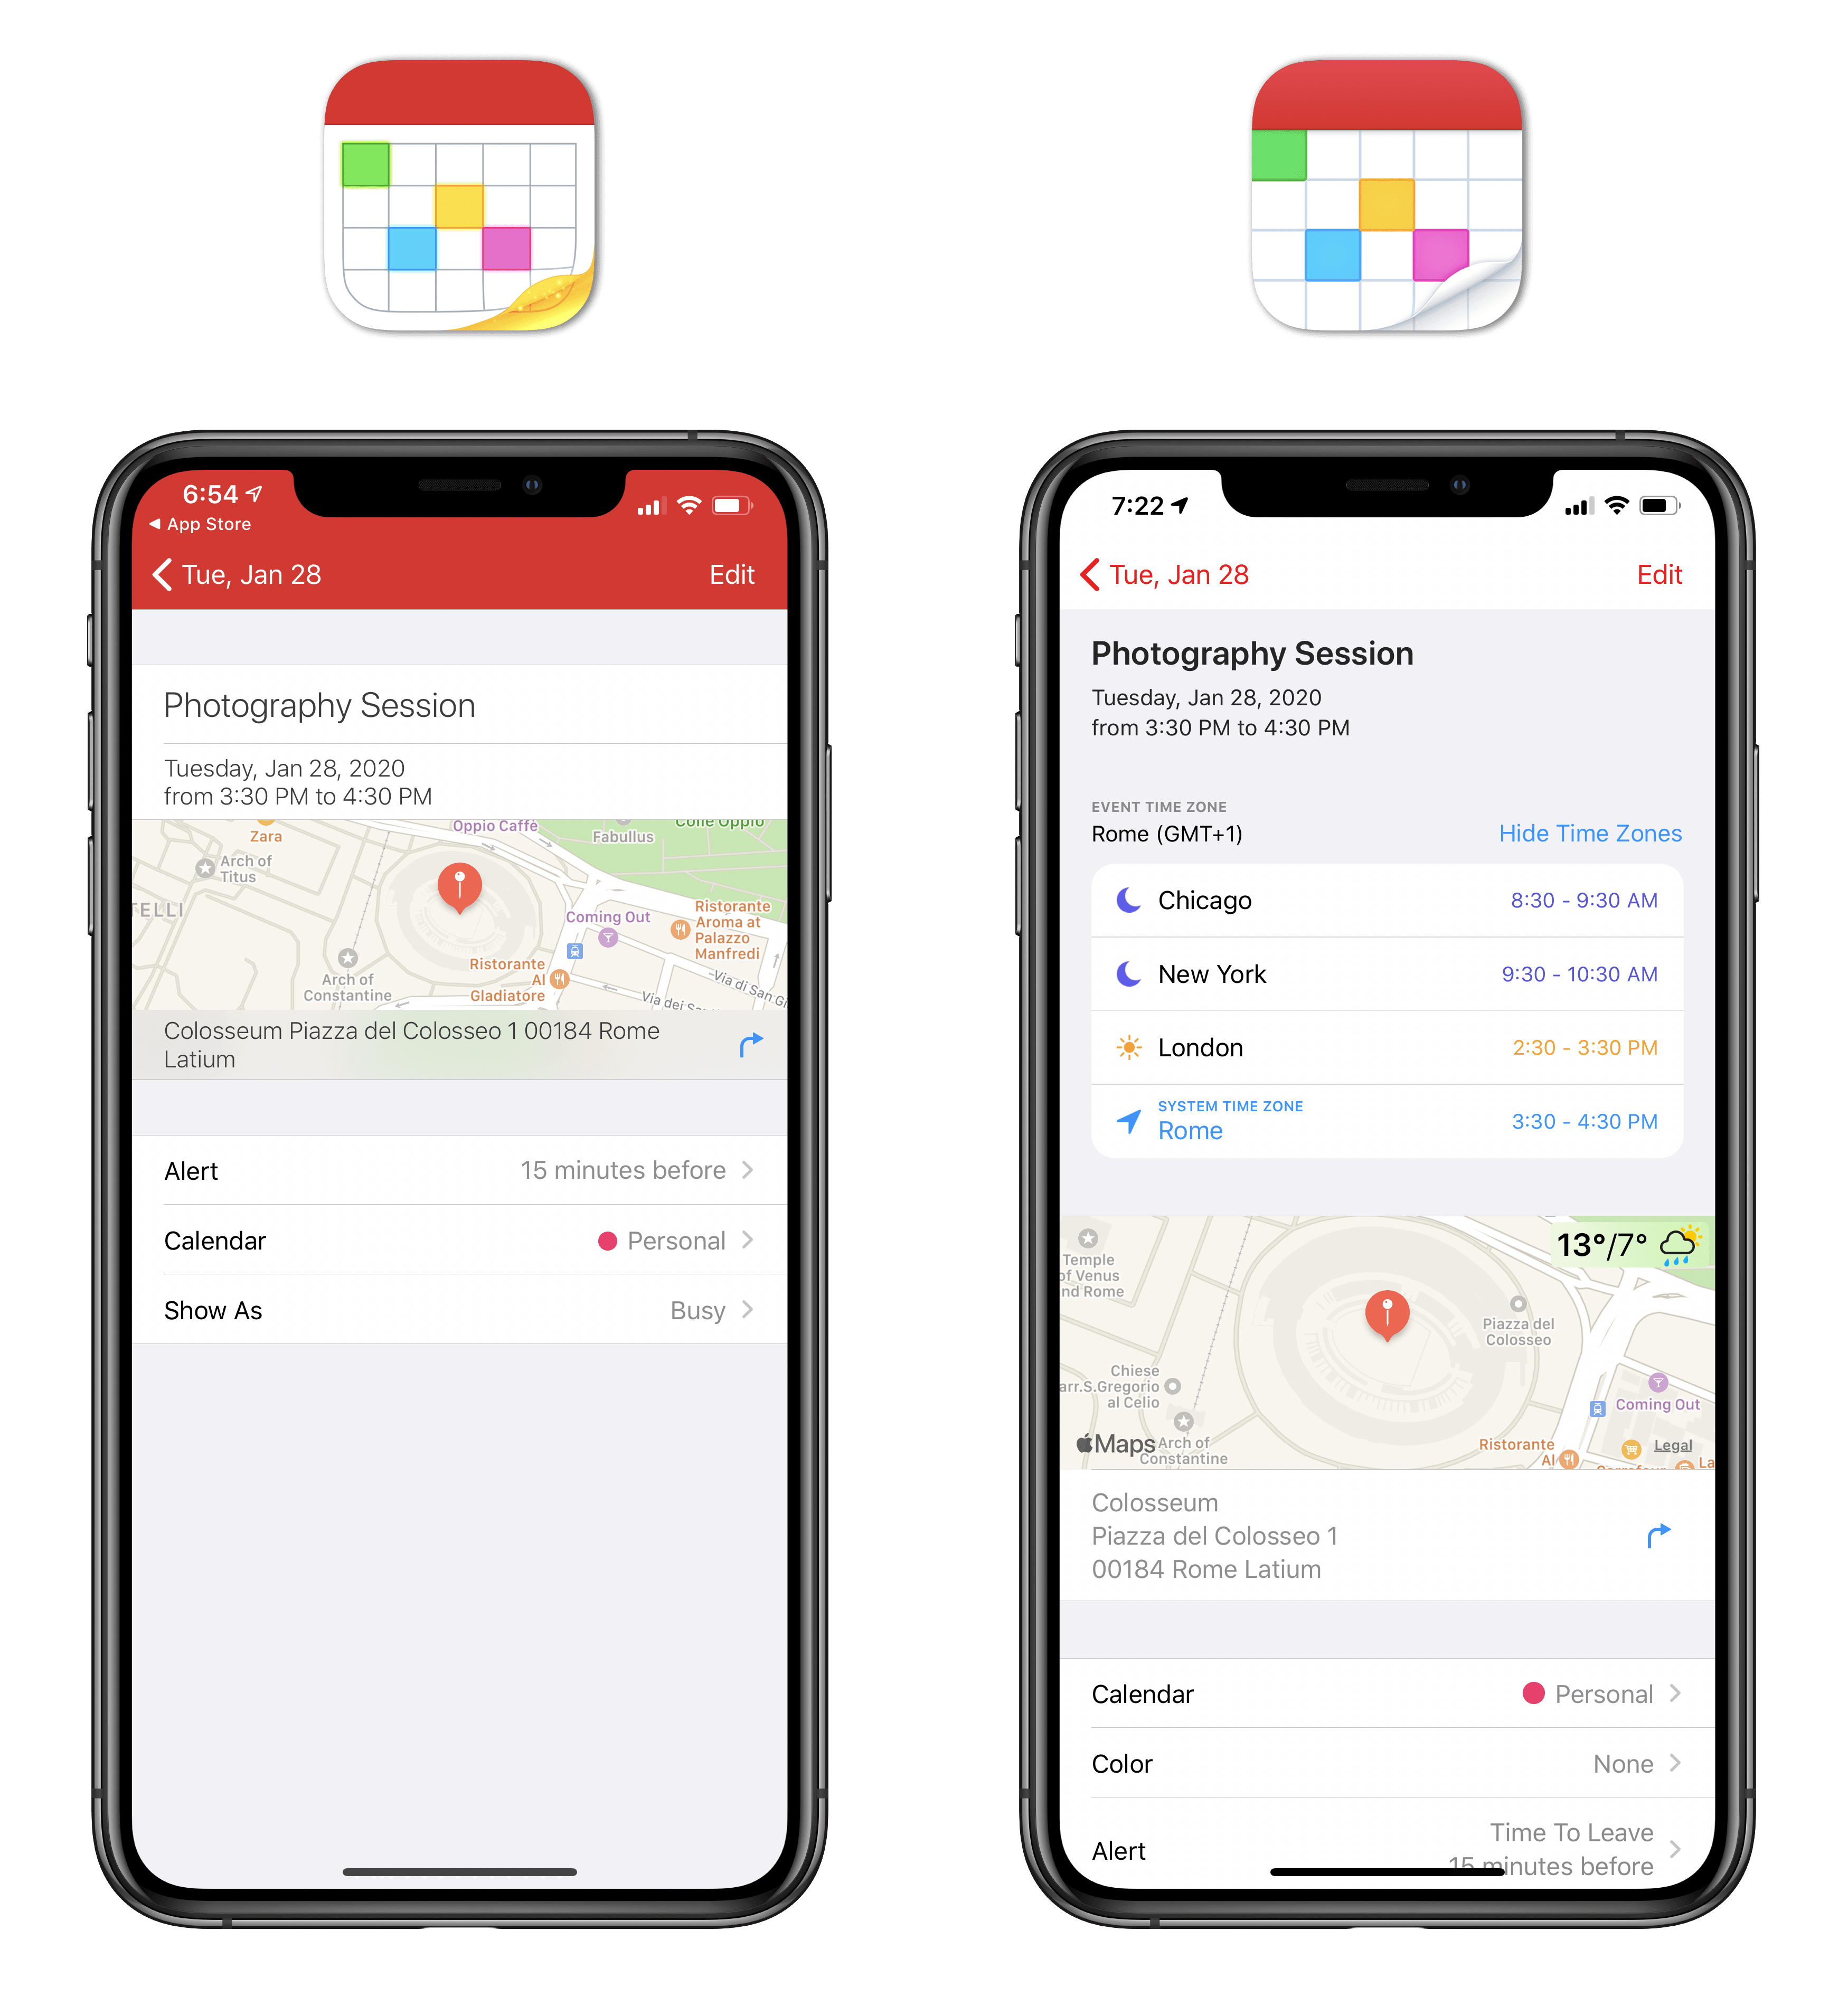 The new event inspector with support for multiple time zones.